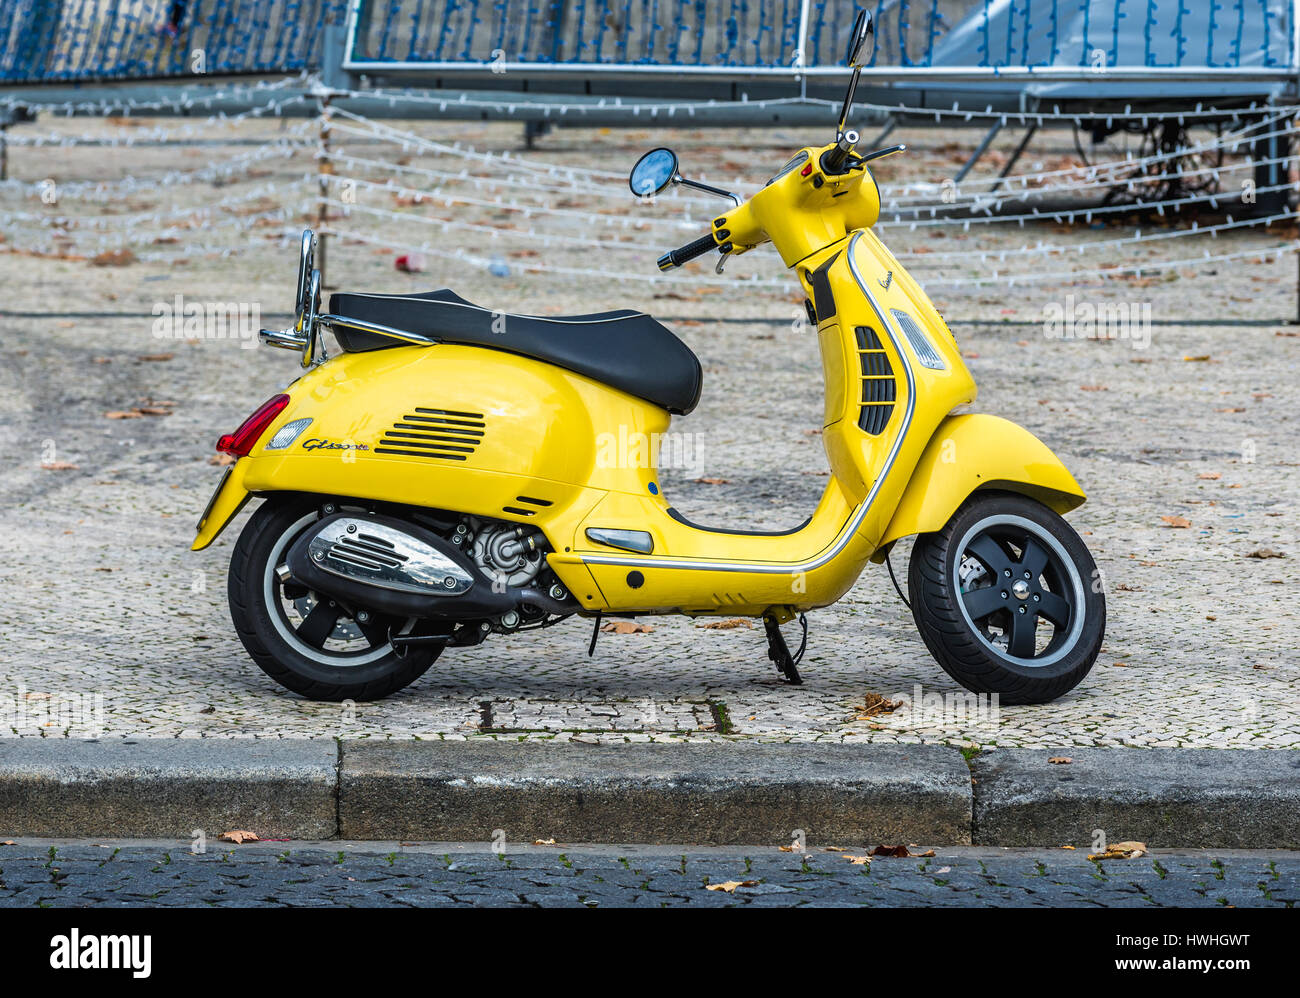 Vespa gts 300 ie motor scooter in Porto city on Iberian Peninsula, second largest city in Portugal - Stock Image